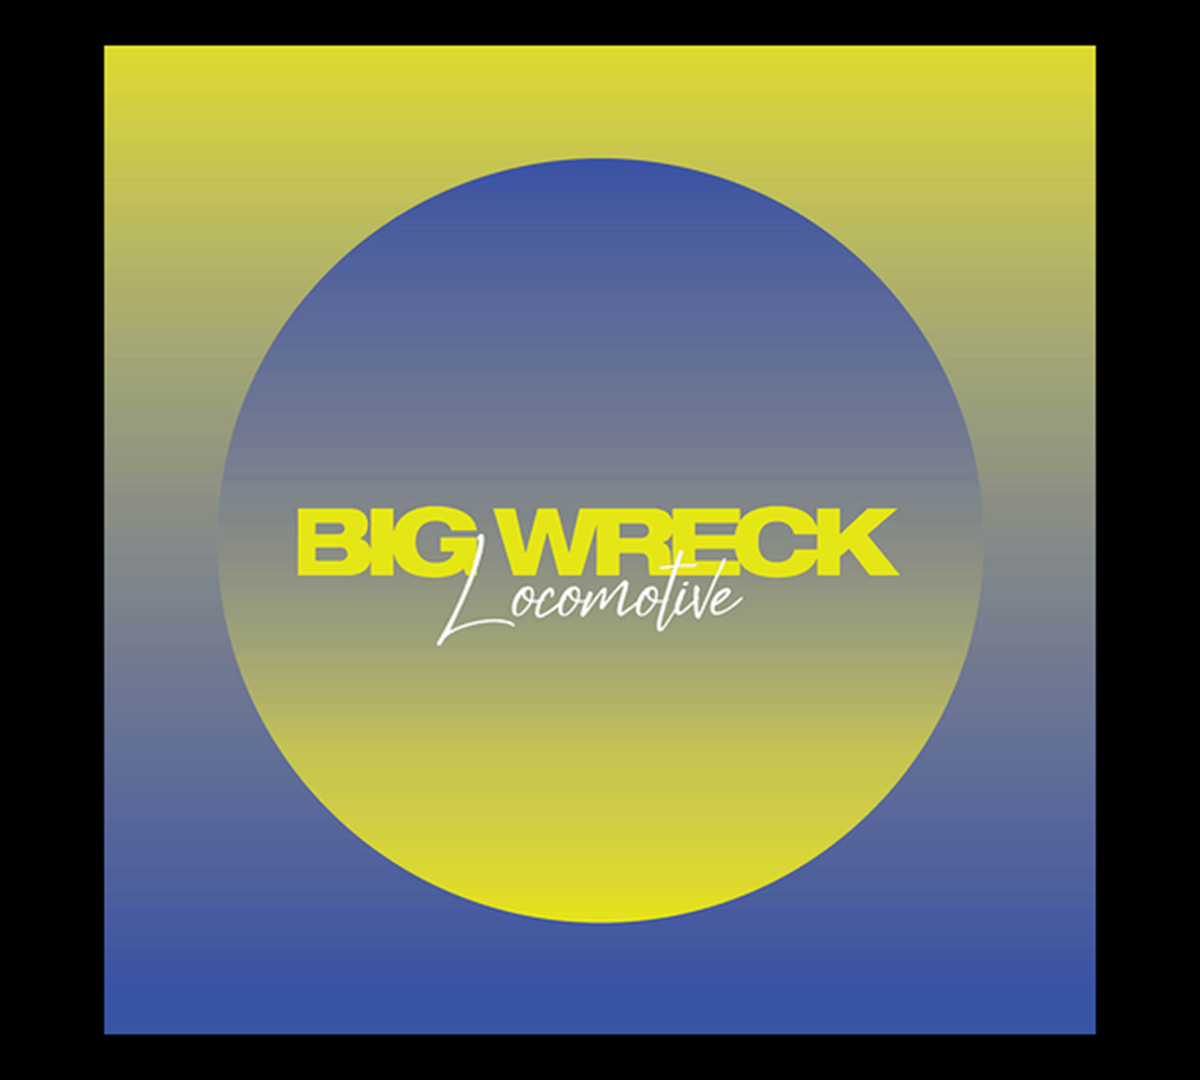 Big Wreck Release Locomotive Single